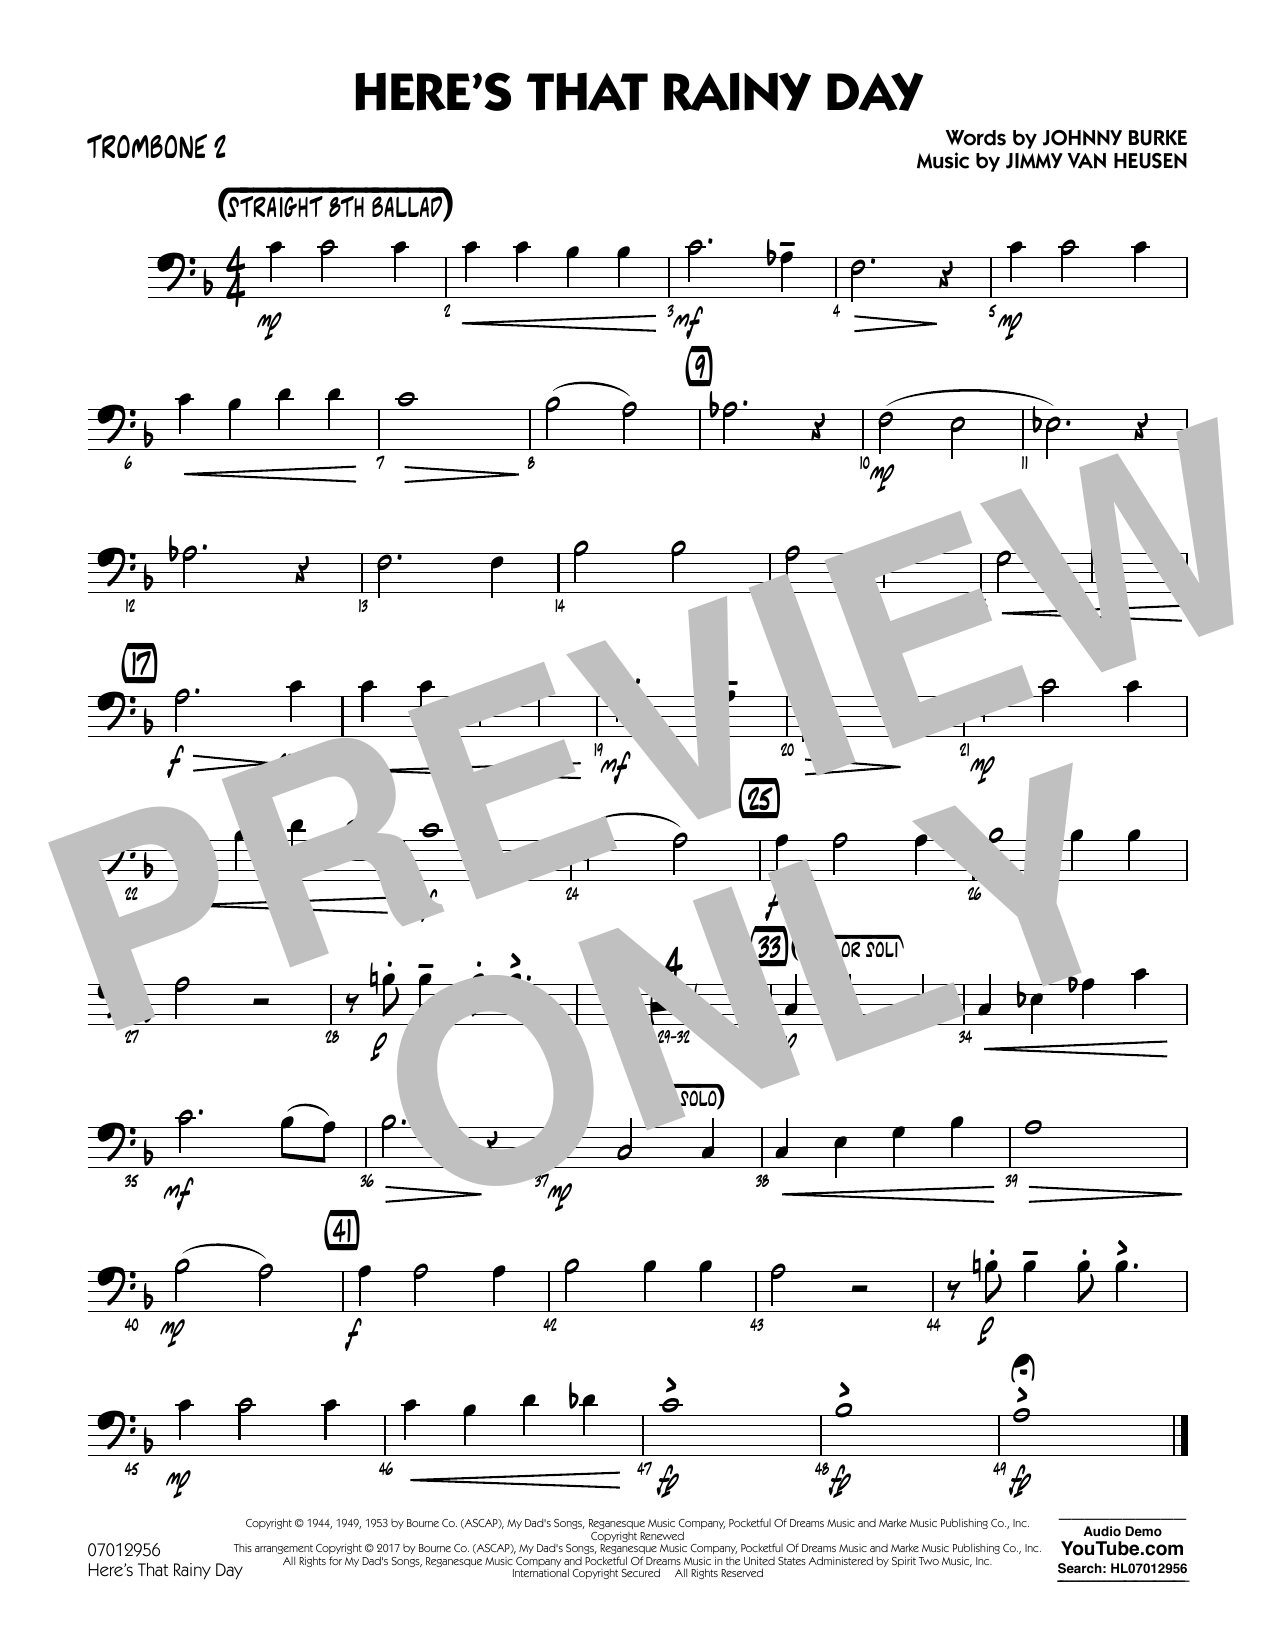 Rick Stitzel Here's That Rainy Day - Trombone 2 sheet music notes and chords. Download Printable PDF.